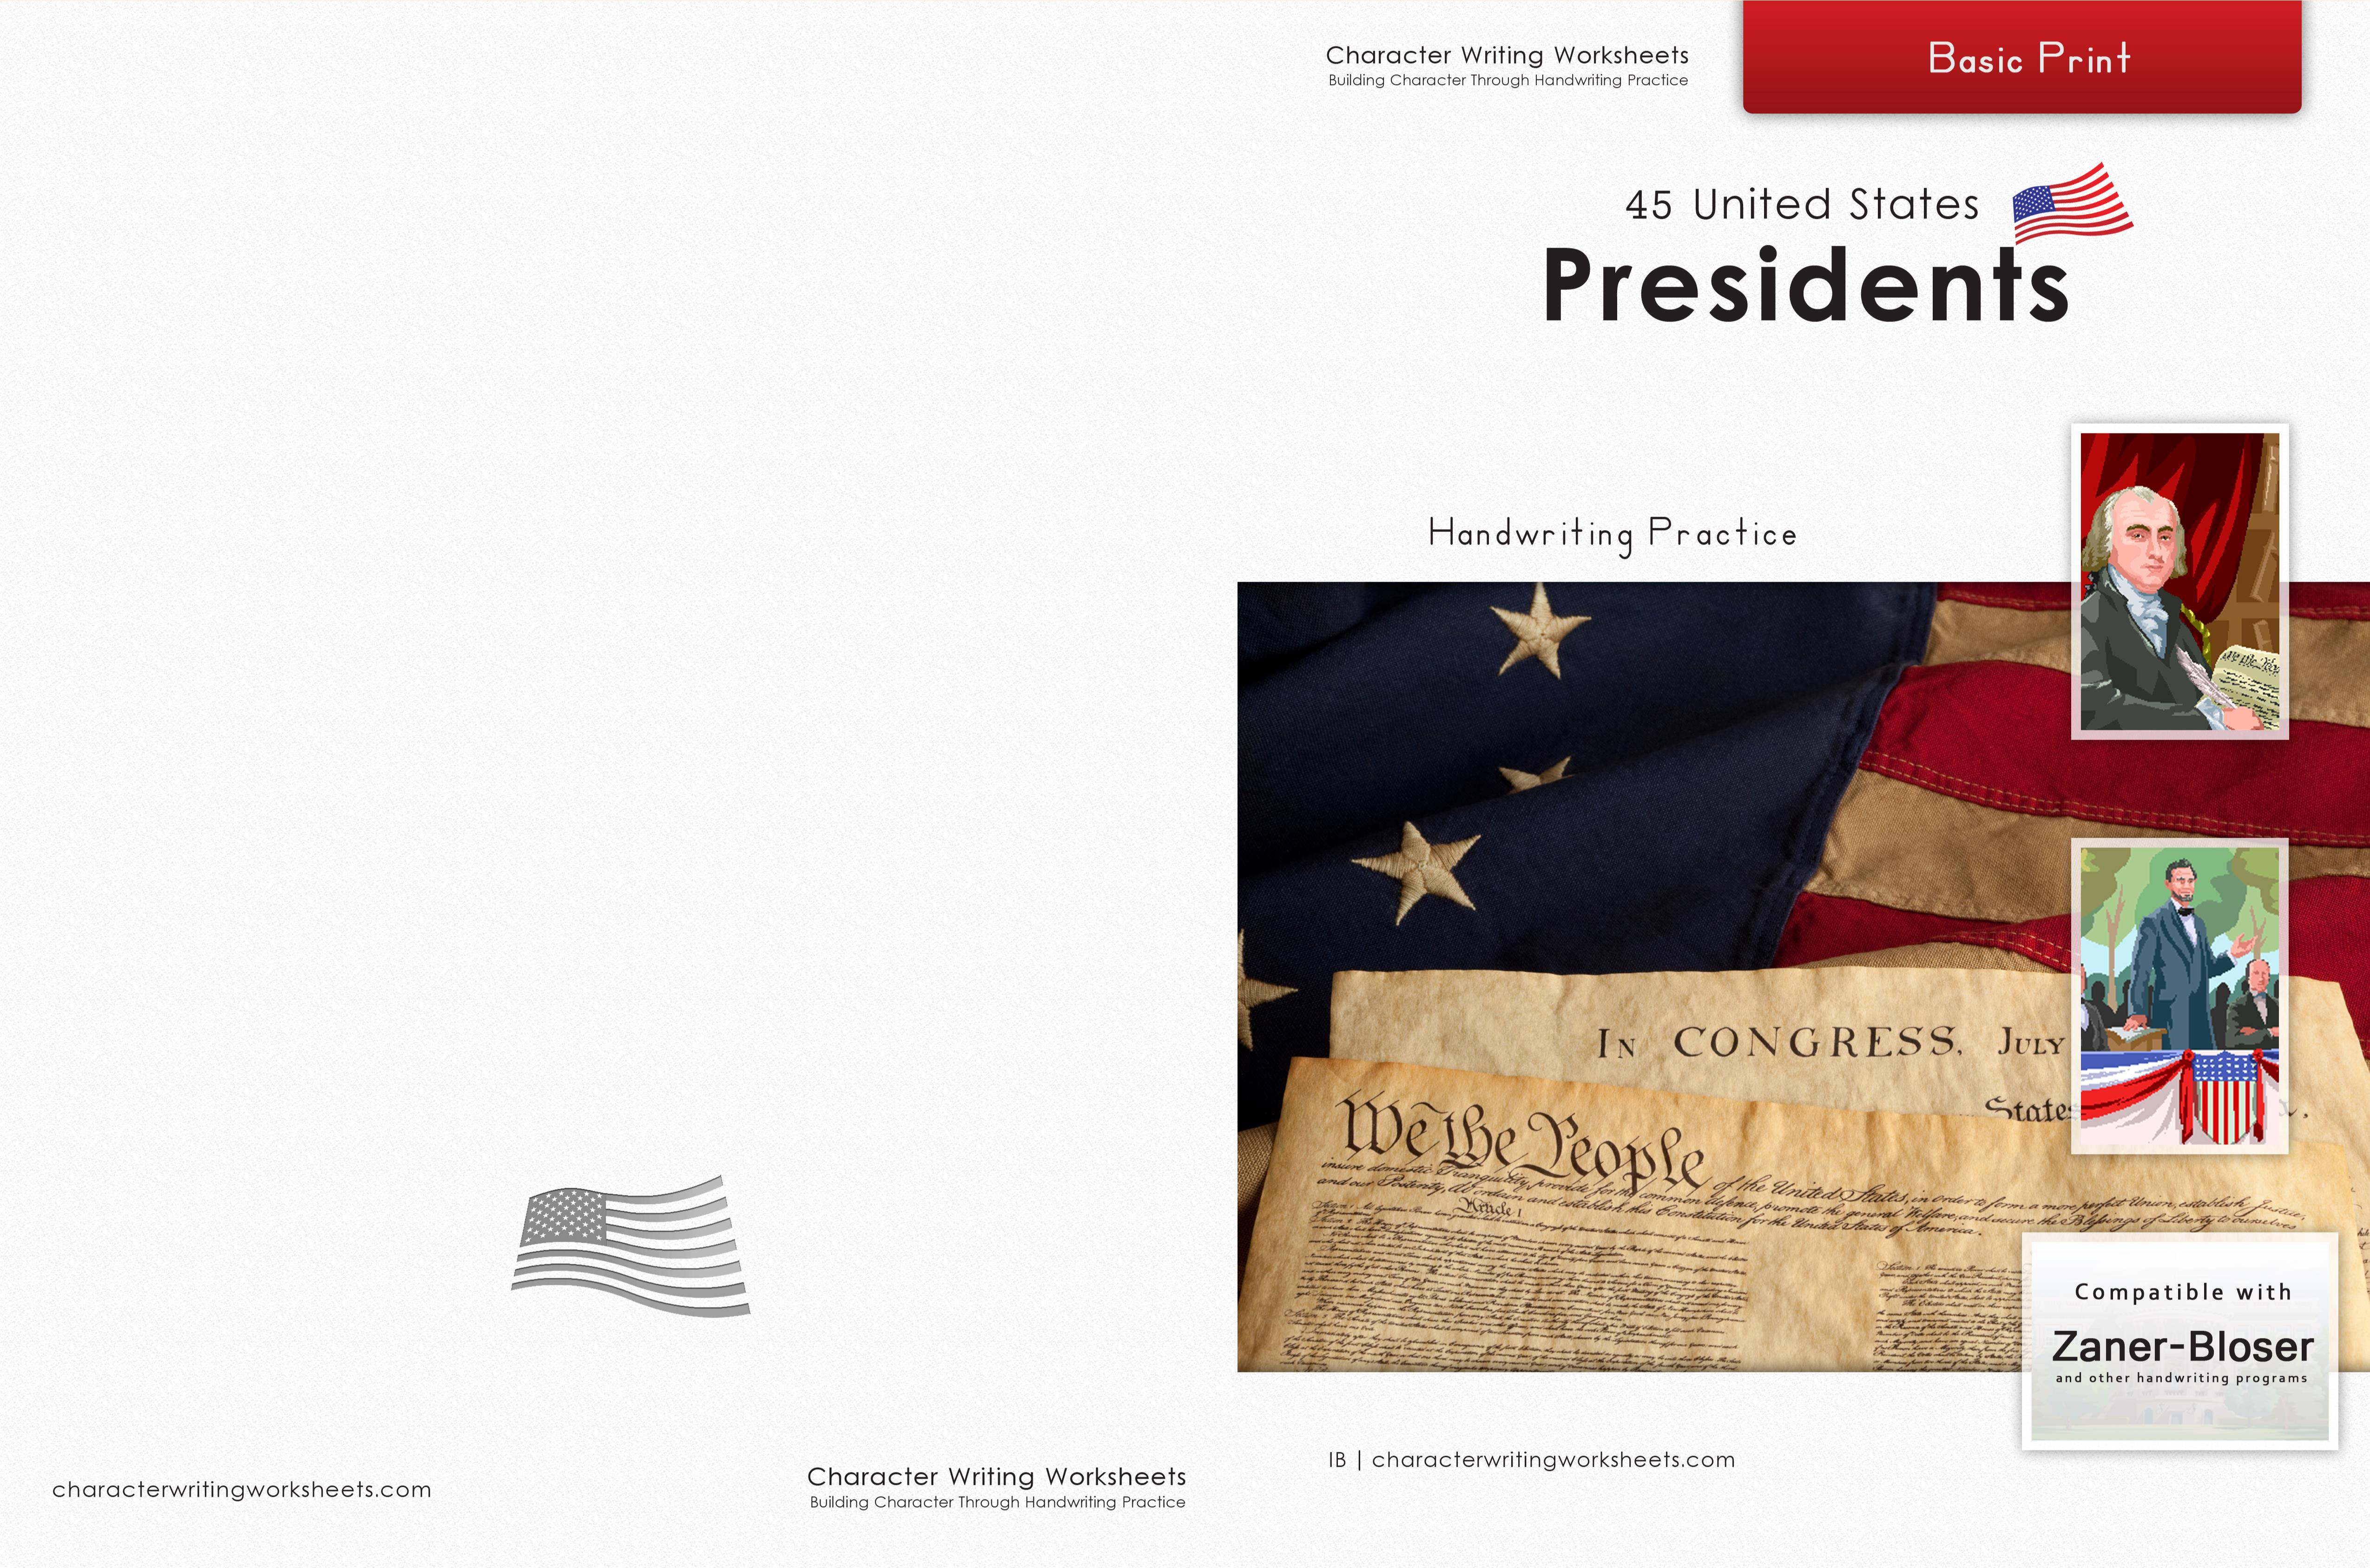 44 United States Presidents - Zaner-Bloser, Basic Print cover image